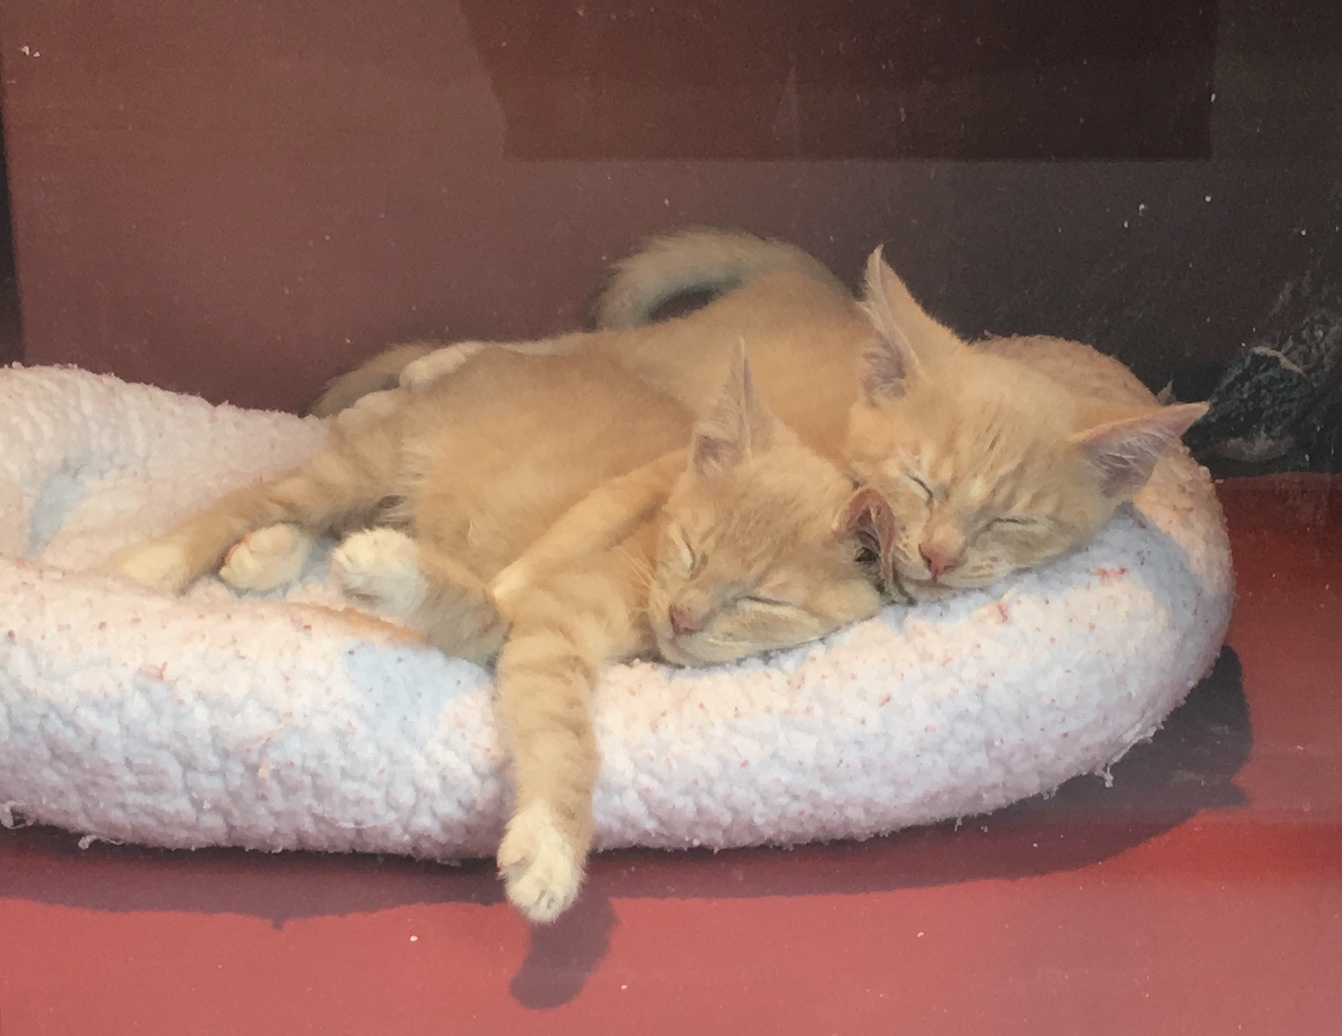 Marmalade Kittens Sleeping Squooshed Together